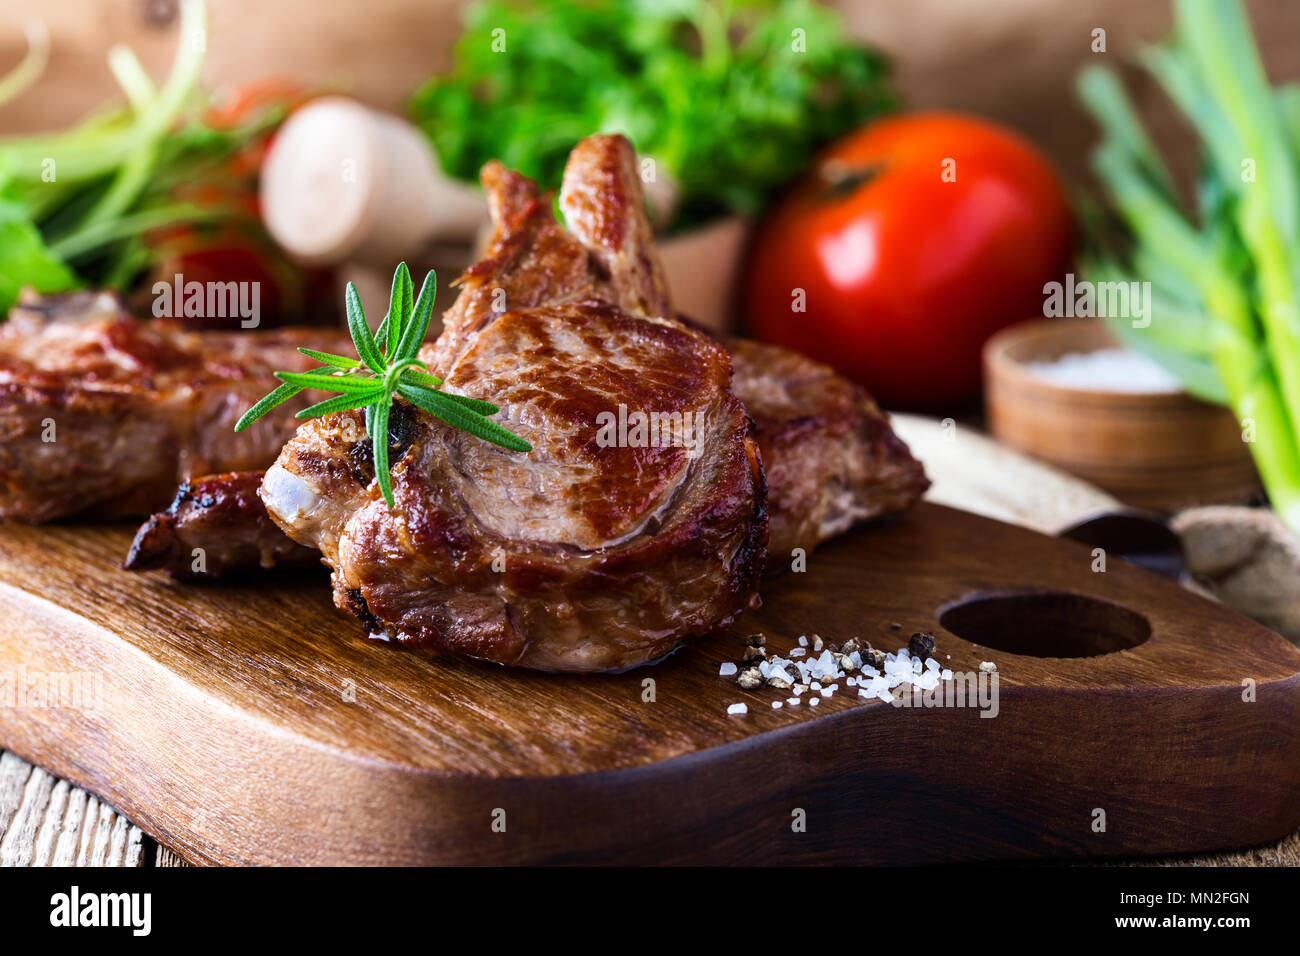 Roasted veal chops with fresh herbs and vegetables on rustic wooden cutting board, pan seared steak dinner - Stock Image